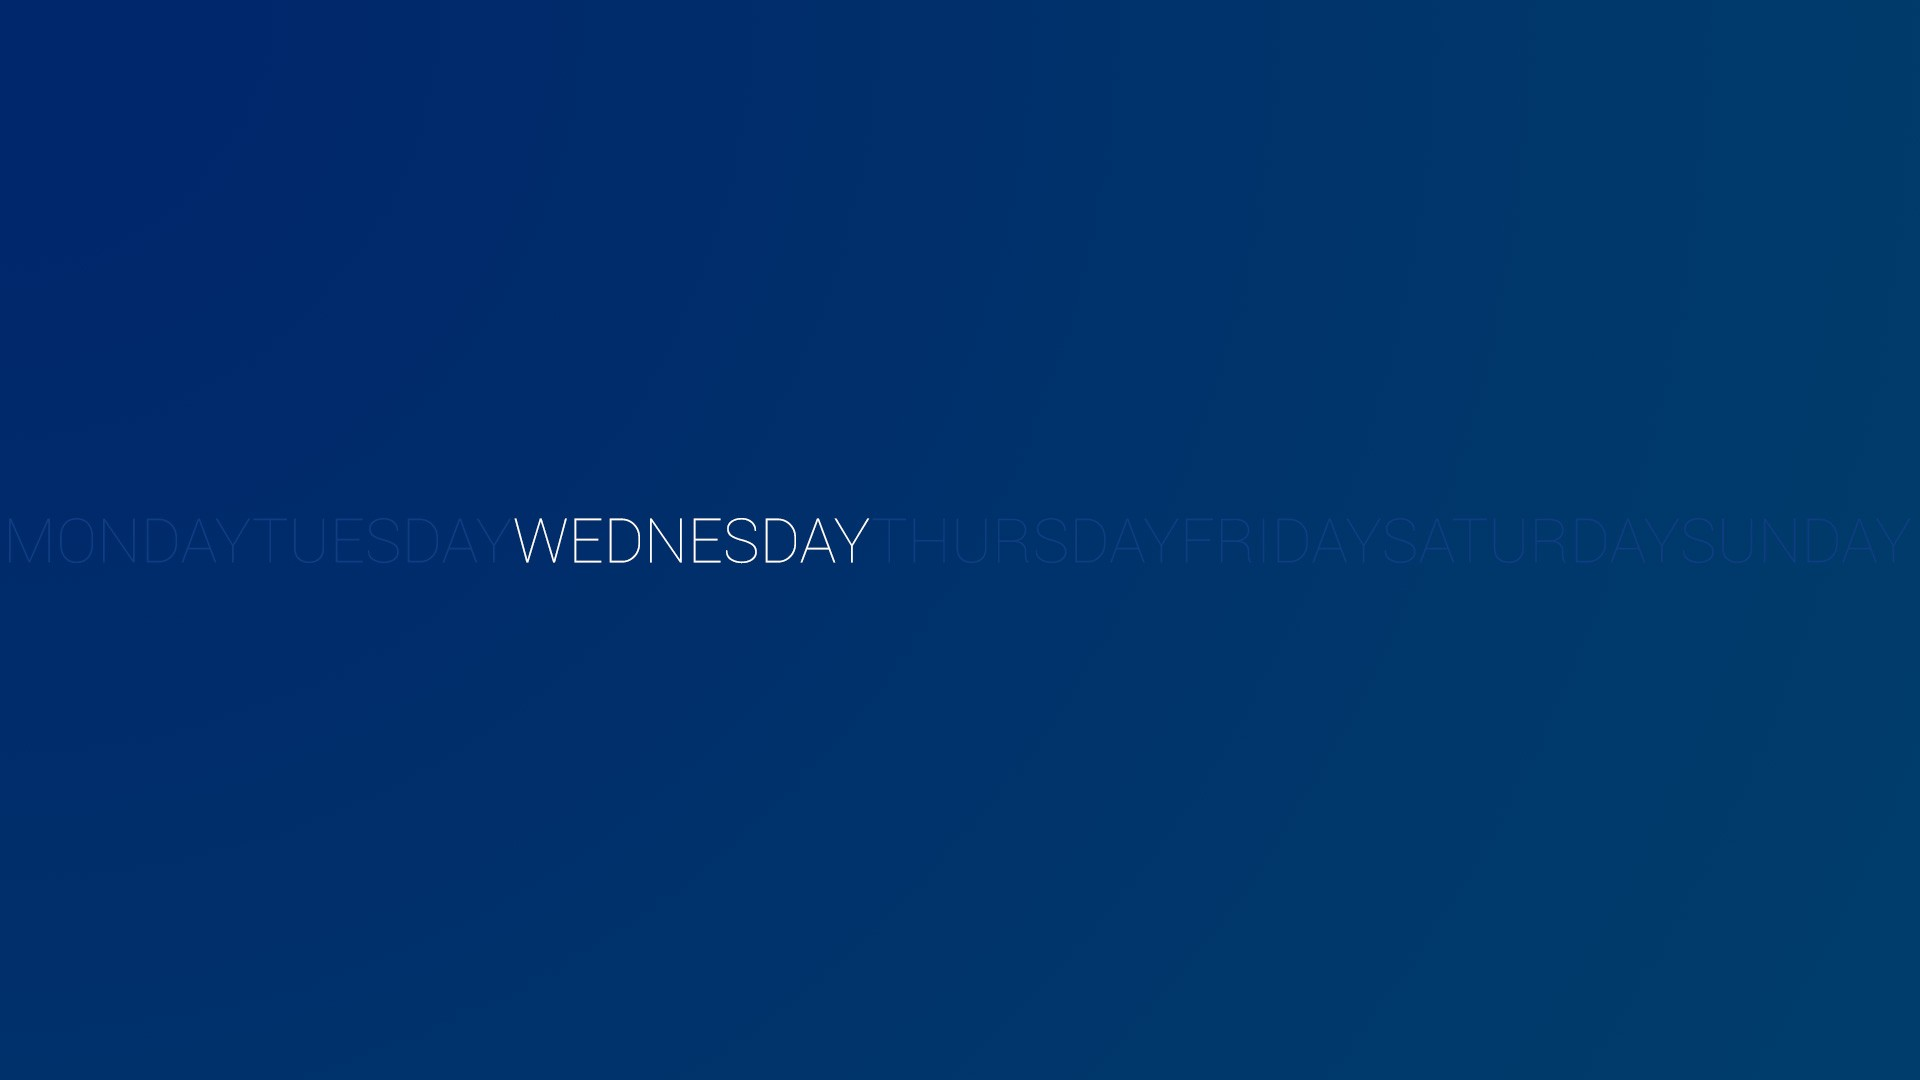 wednesday typography wallpaper 64229